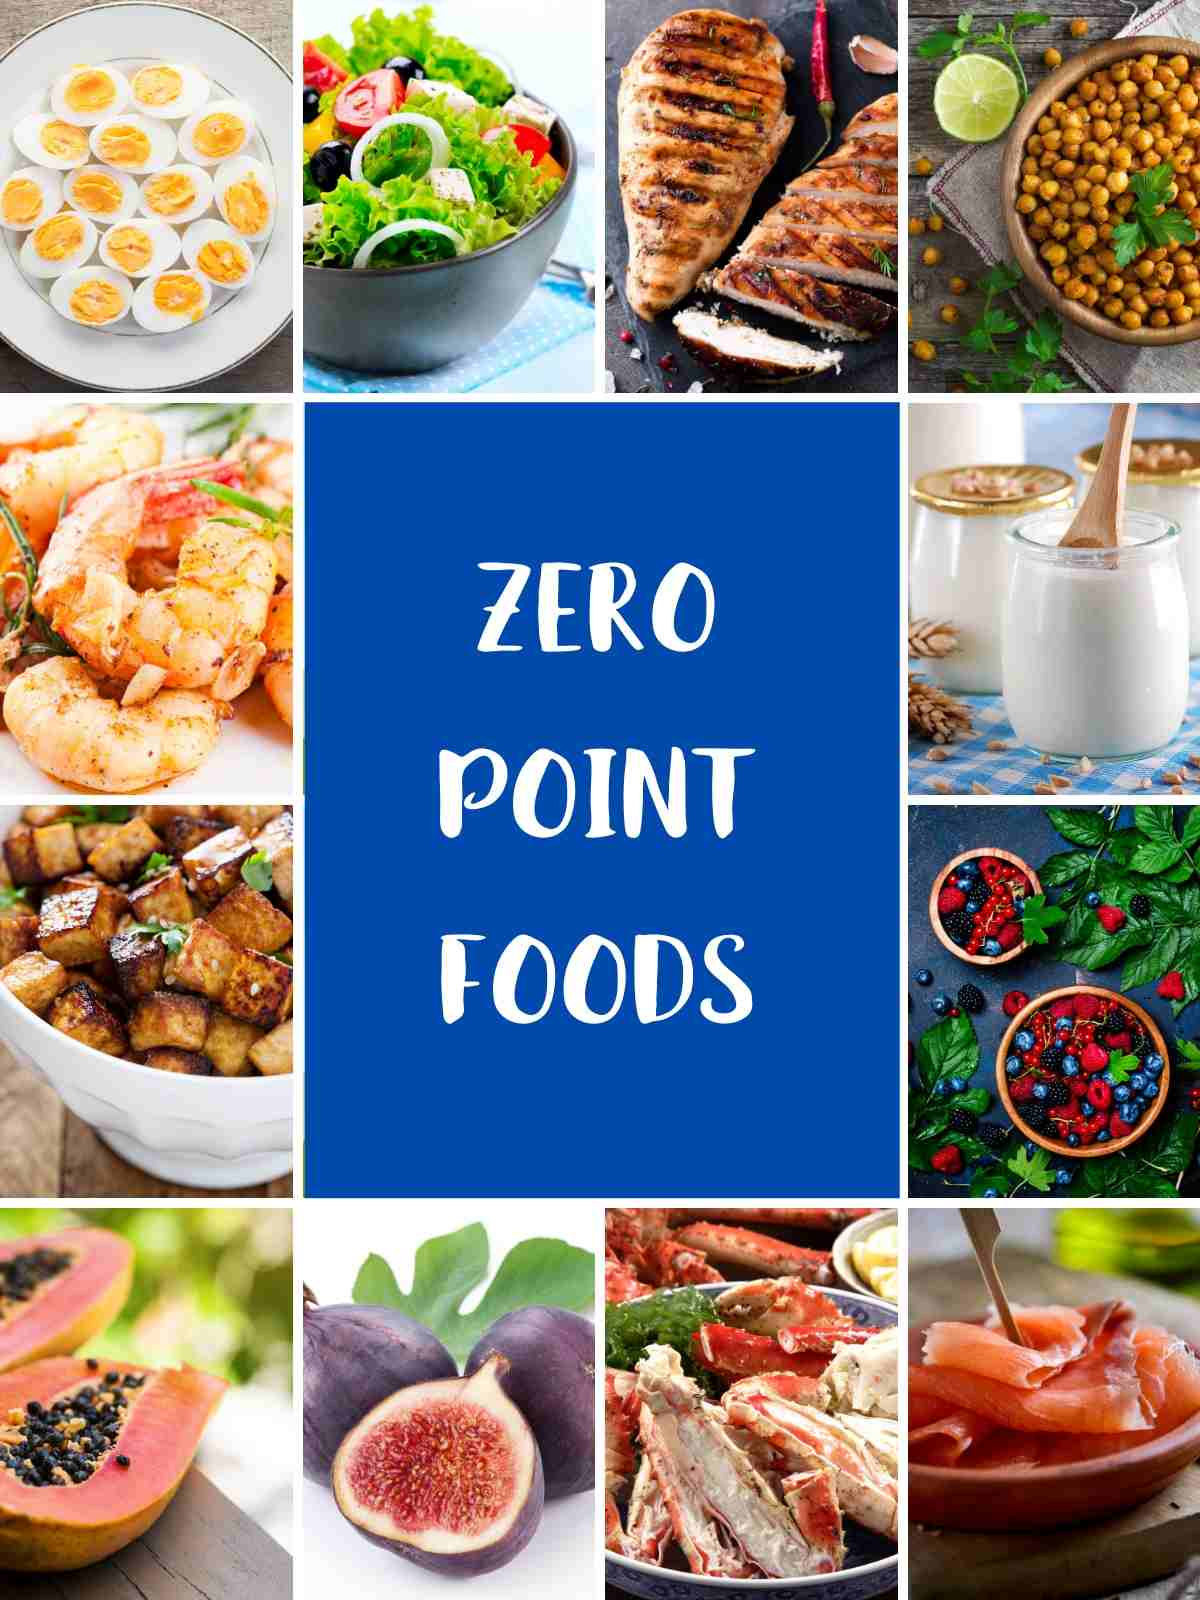 Pictures of foods that are zero smartpoints on WW blue plan, including eggs, salad, chicken breast, chickpeas, shrimp, yogurt.